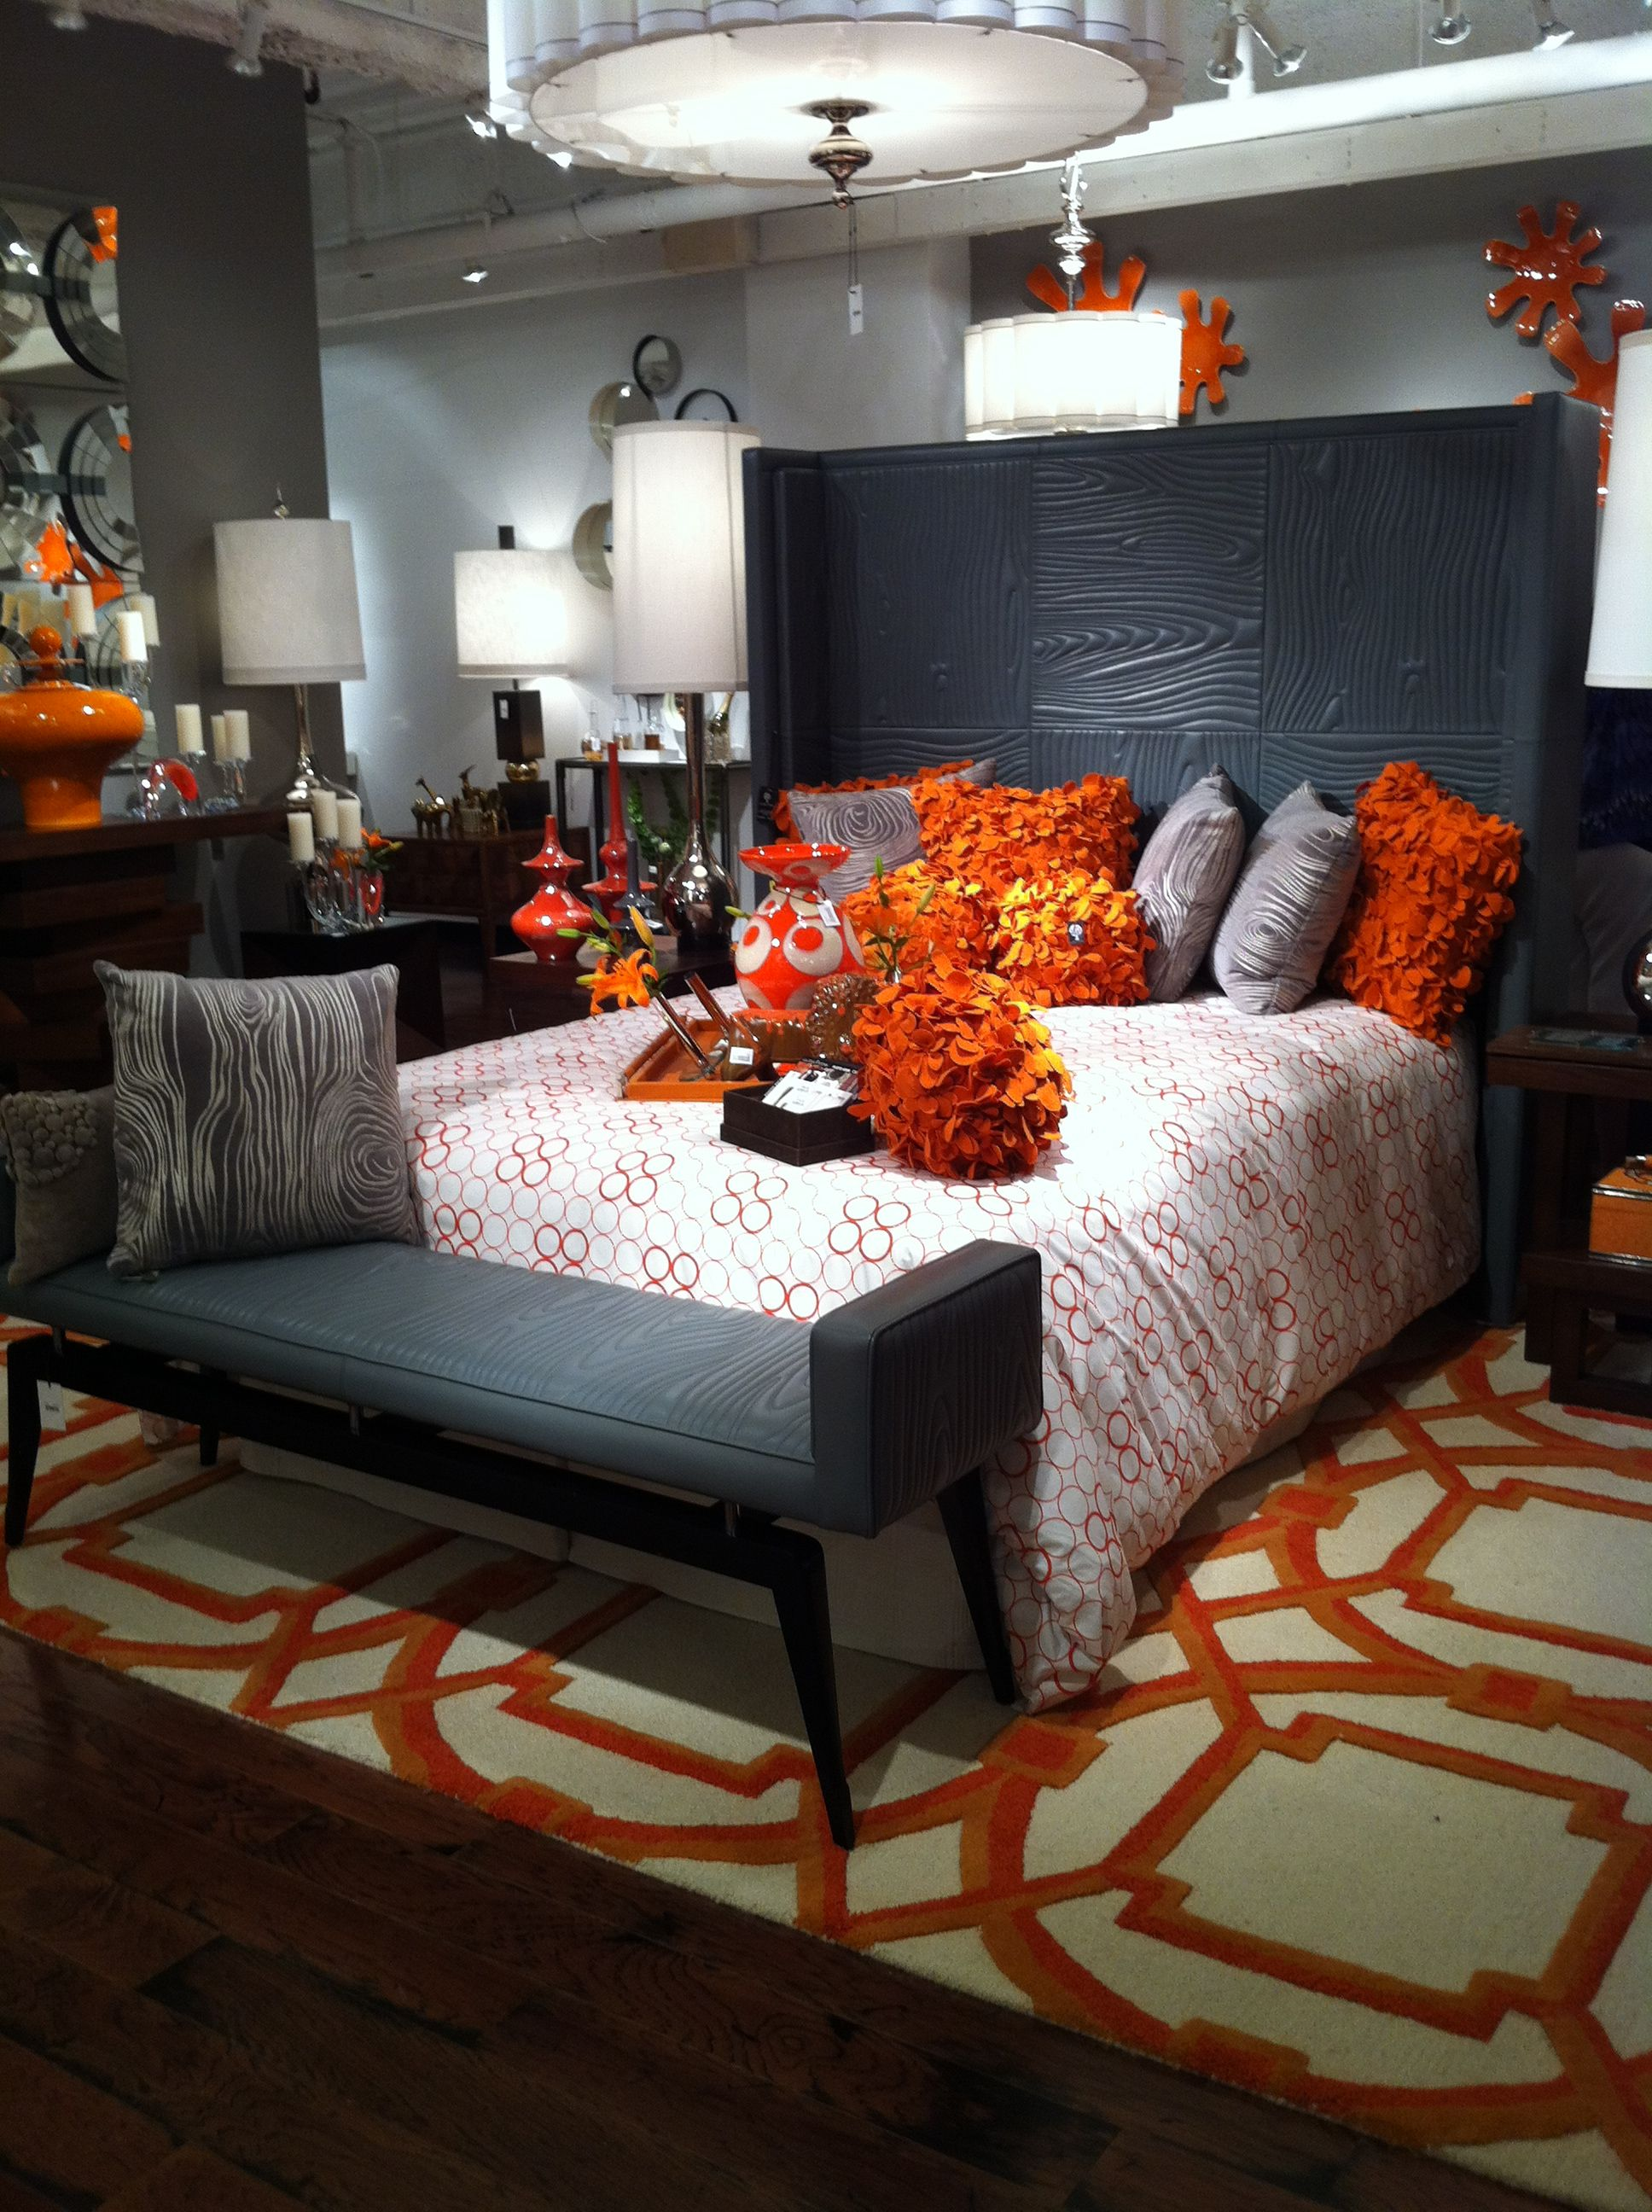 Blue And Orange Living Room Ideas: 11 Market Trends: Orange/gray Color Schemes And More